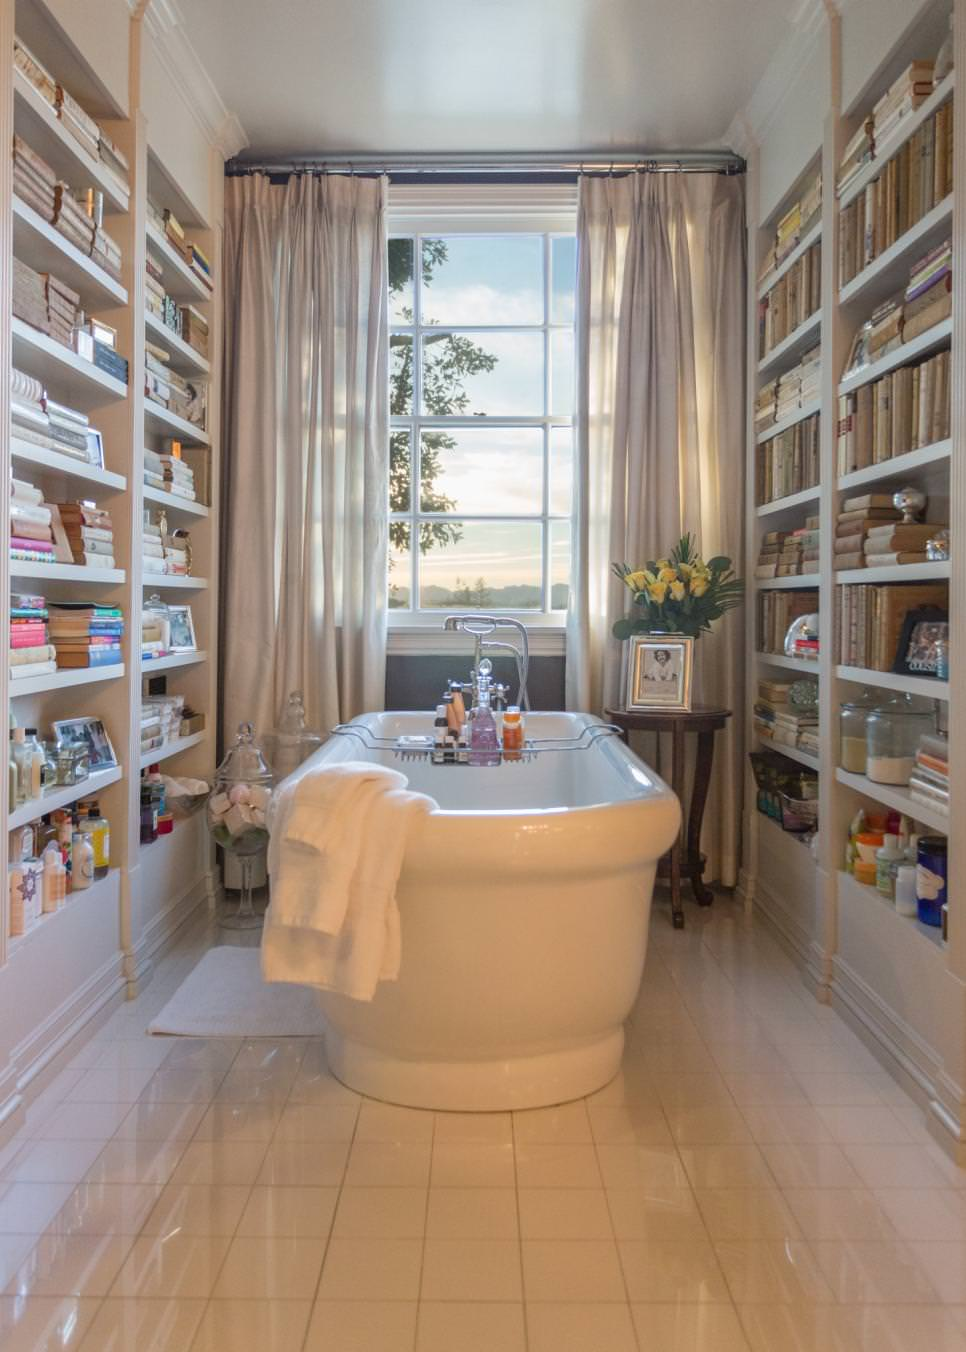 Celebrity Bathroom With Built-In Bookshelves